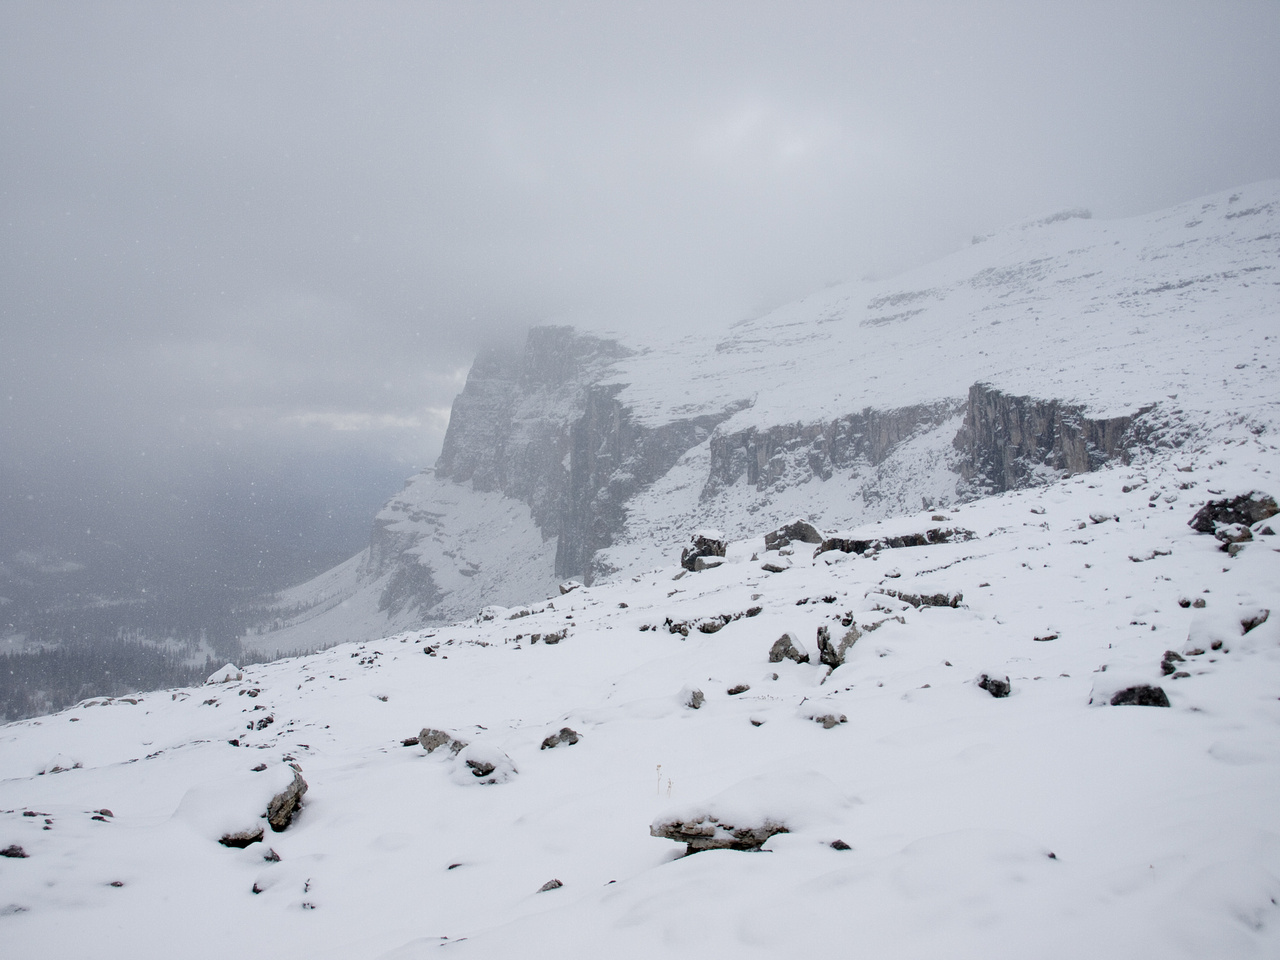 More snow and weather as we ascend.